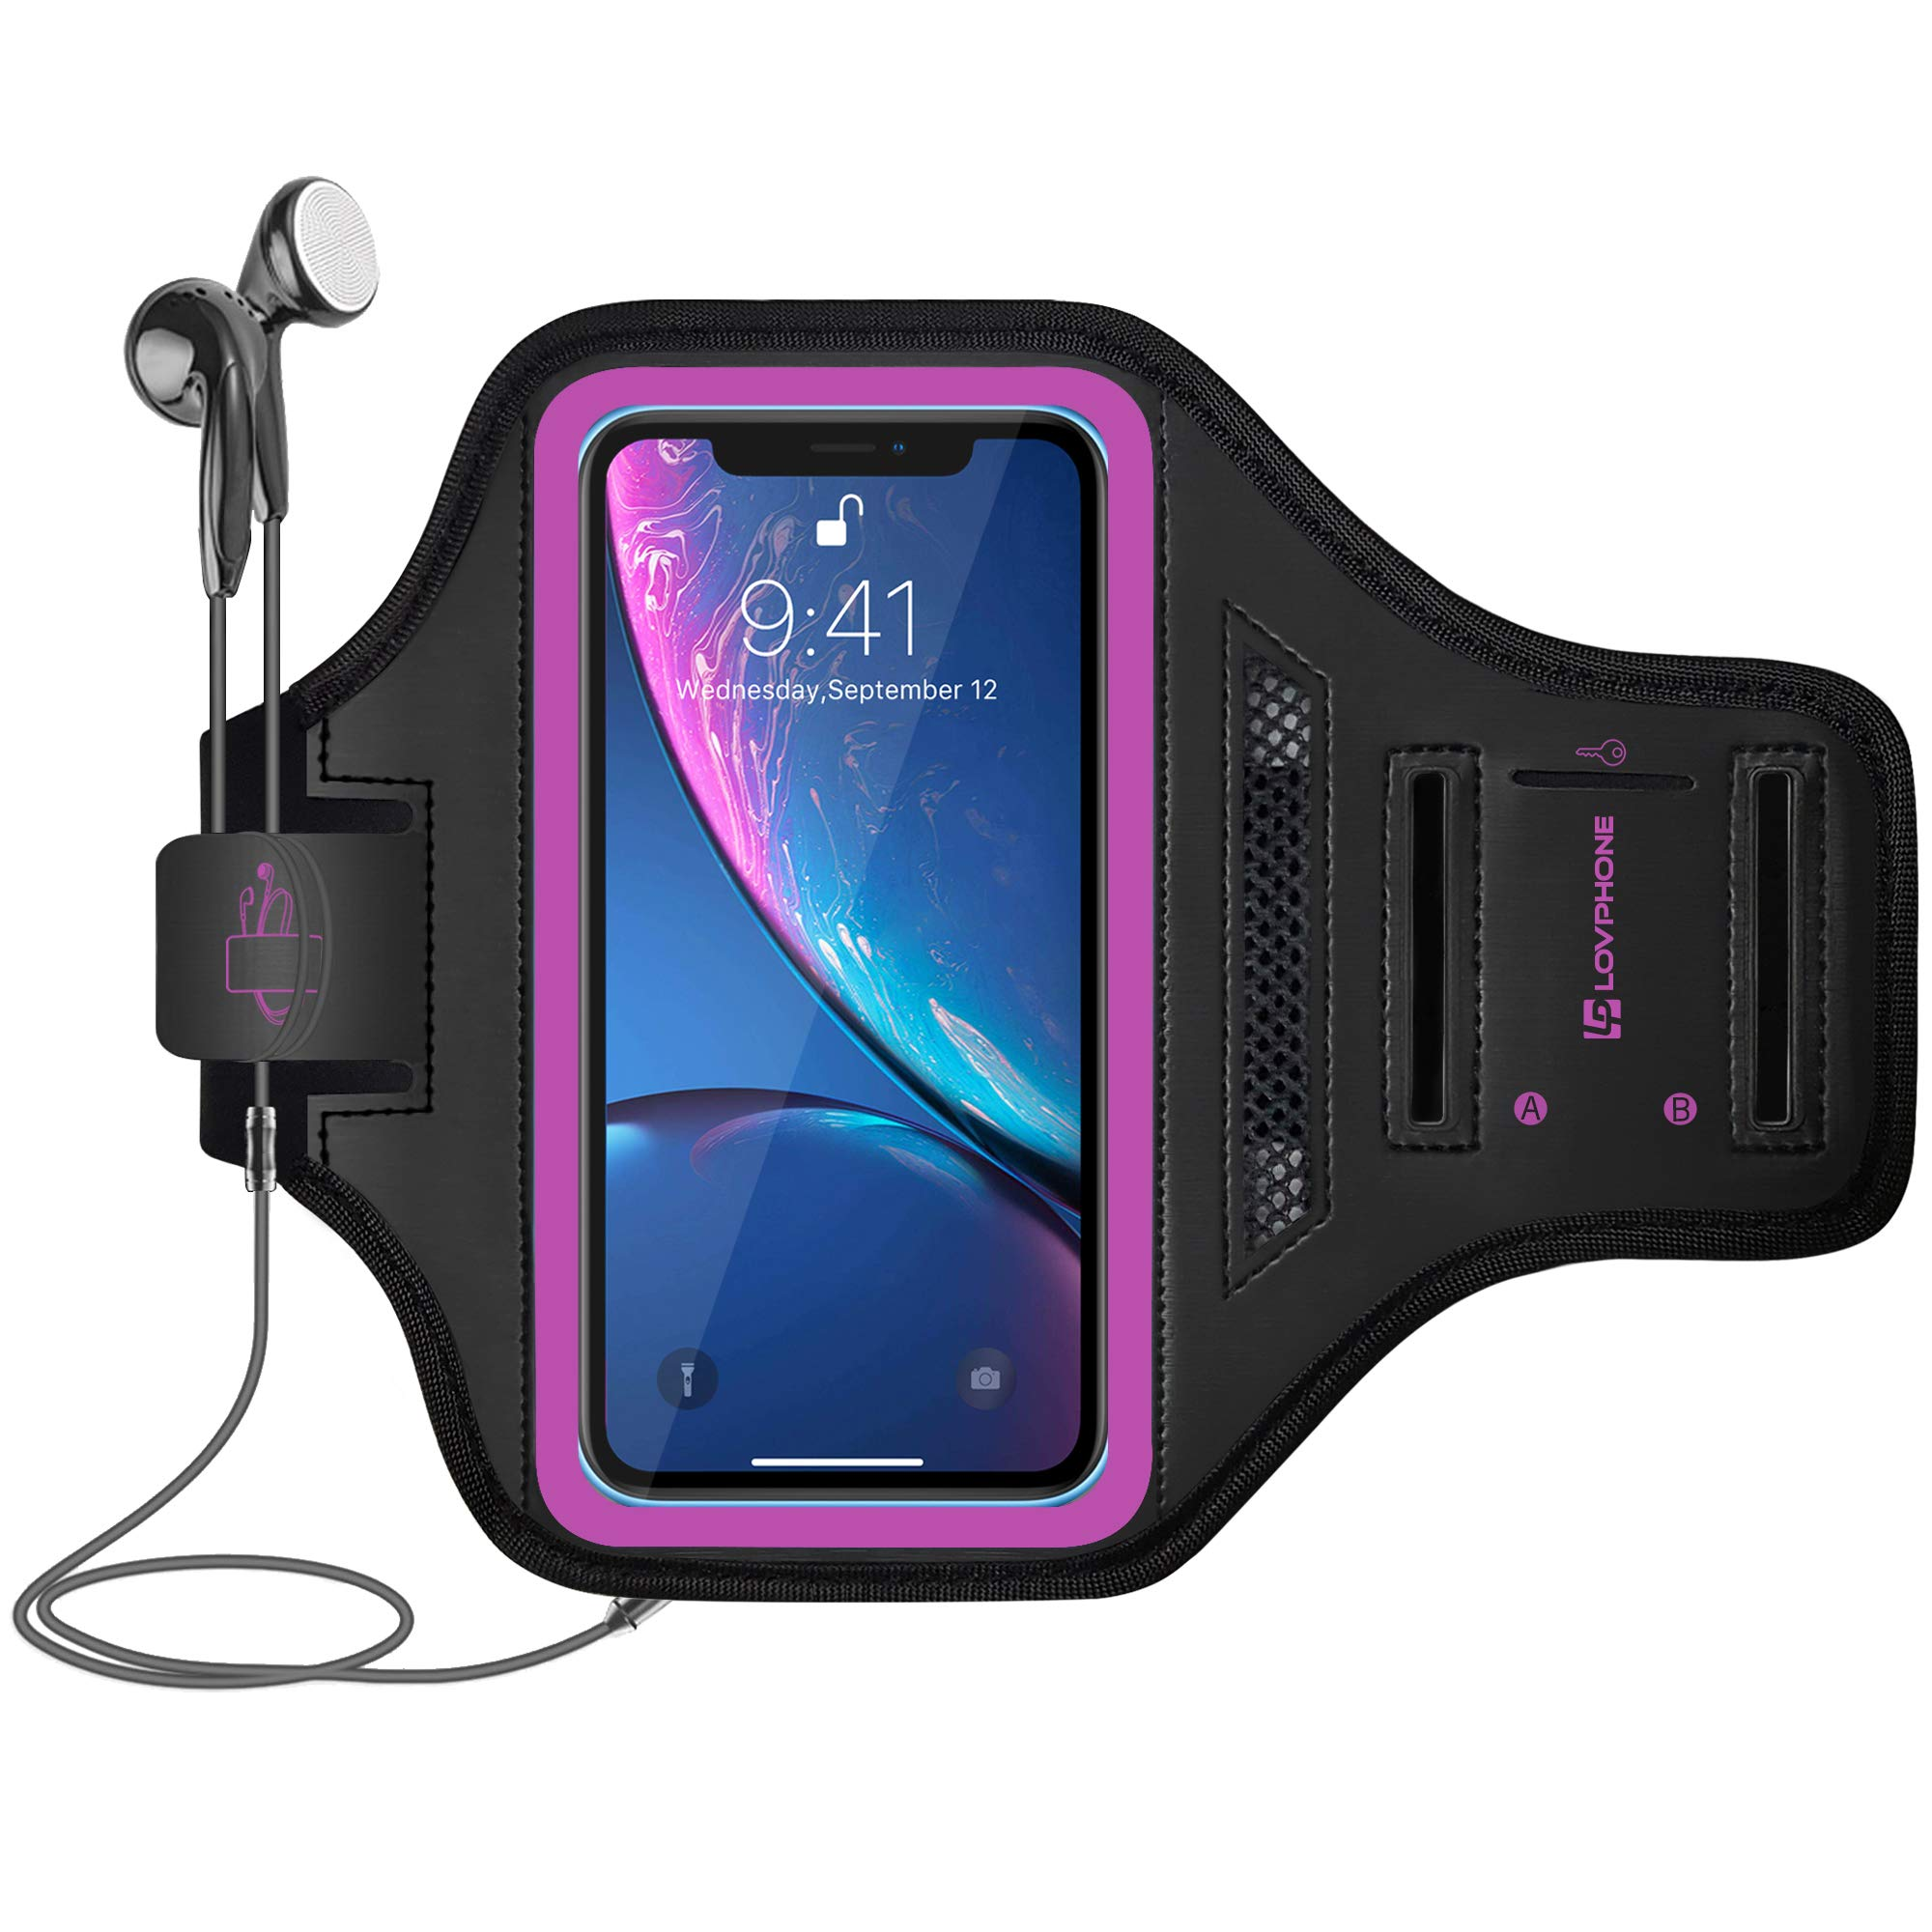 LOVPHONE iPhone 11 Pro Max/iPhone 11 Pro/iPhone Xs Max/iPhone XR Armband, Waterproof Sport Outdoor Gym Case with Running Key Holder Card Slot Phone Case Bag Armband (Rosy)